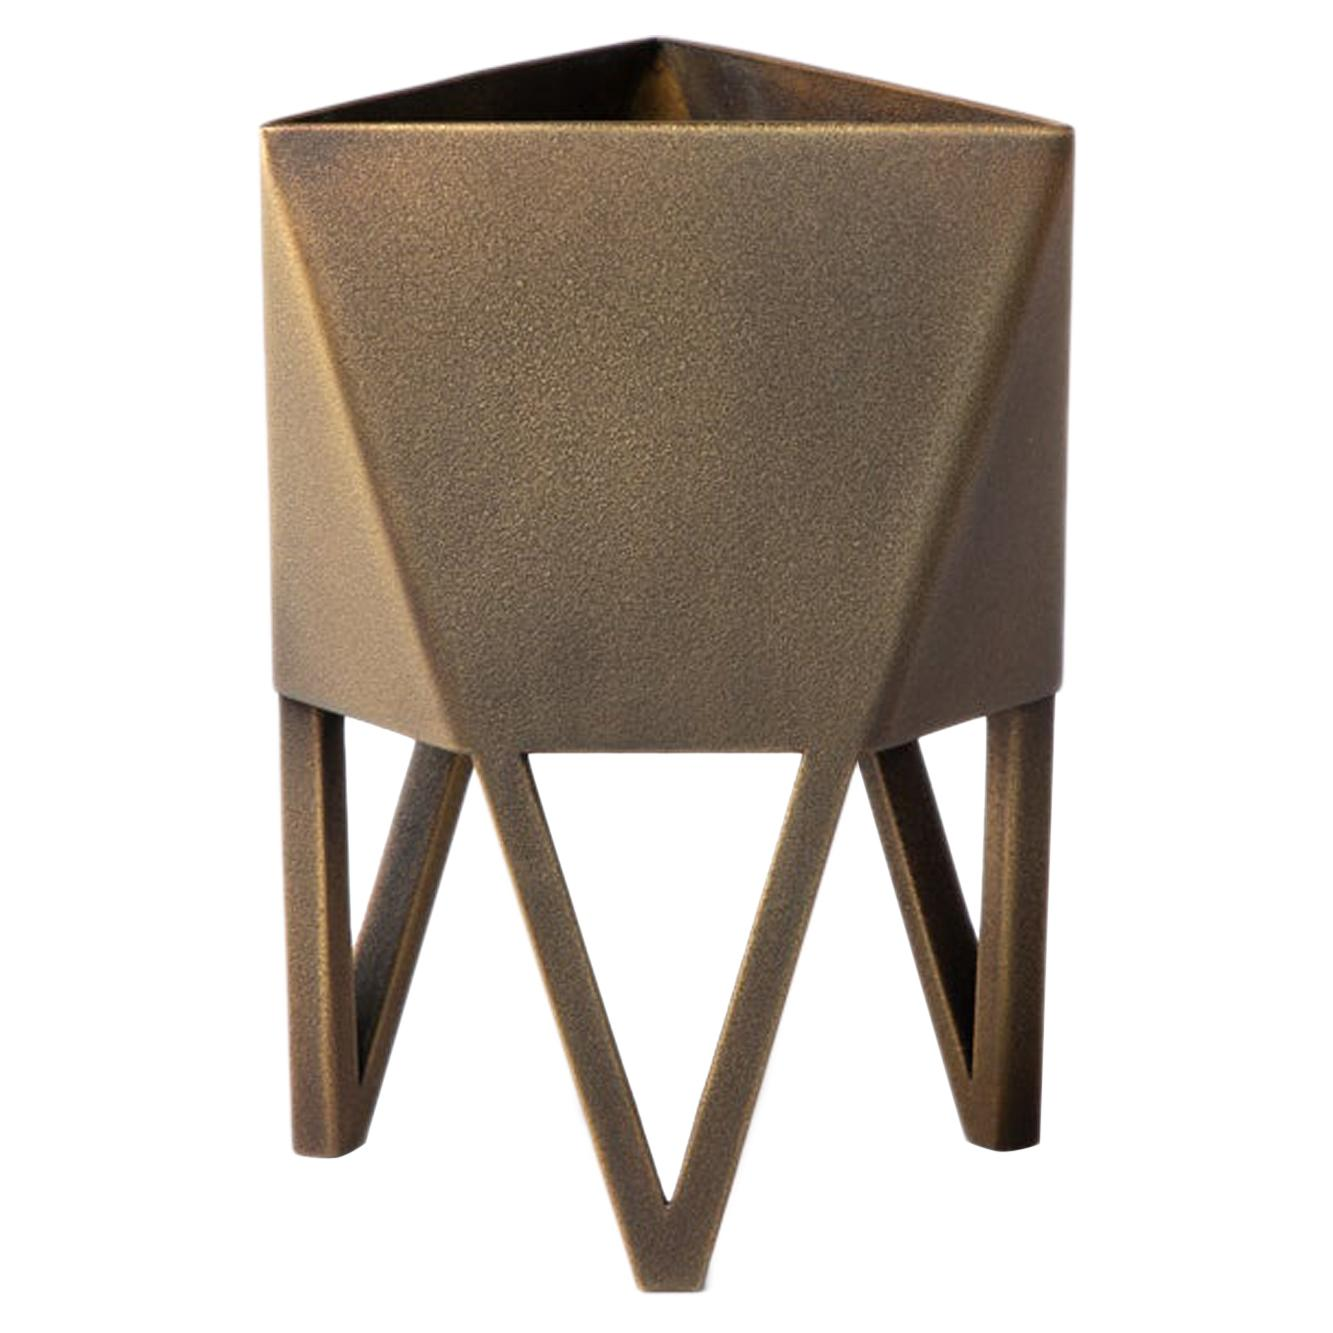 Large Deca Planter in Antique Brass by Force/Collide